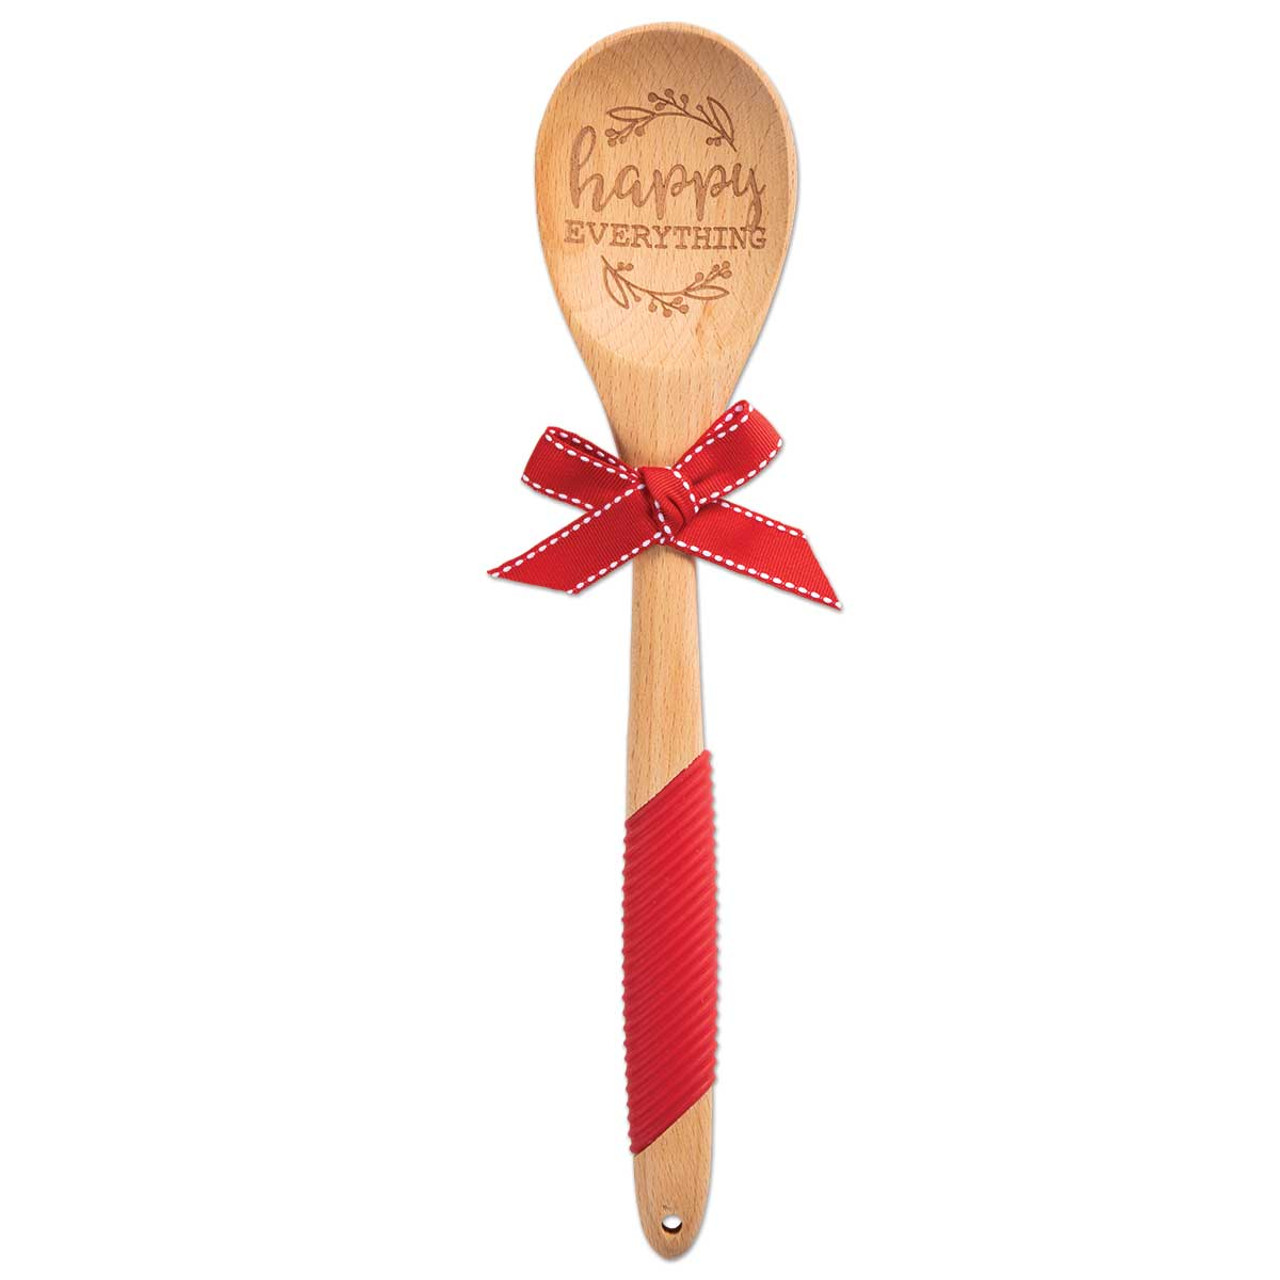 happy everything wooden sentiment spoon